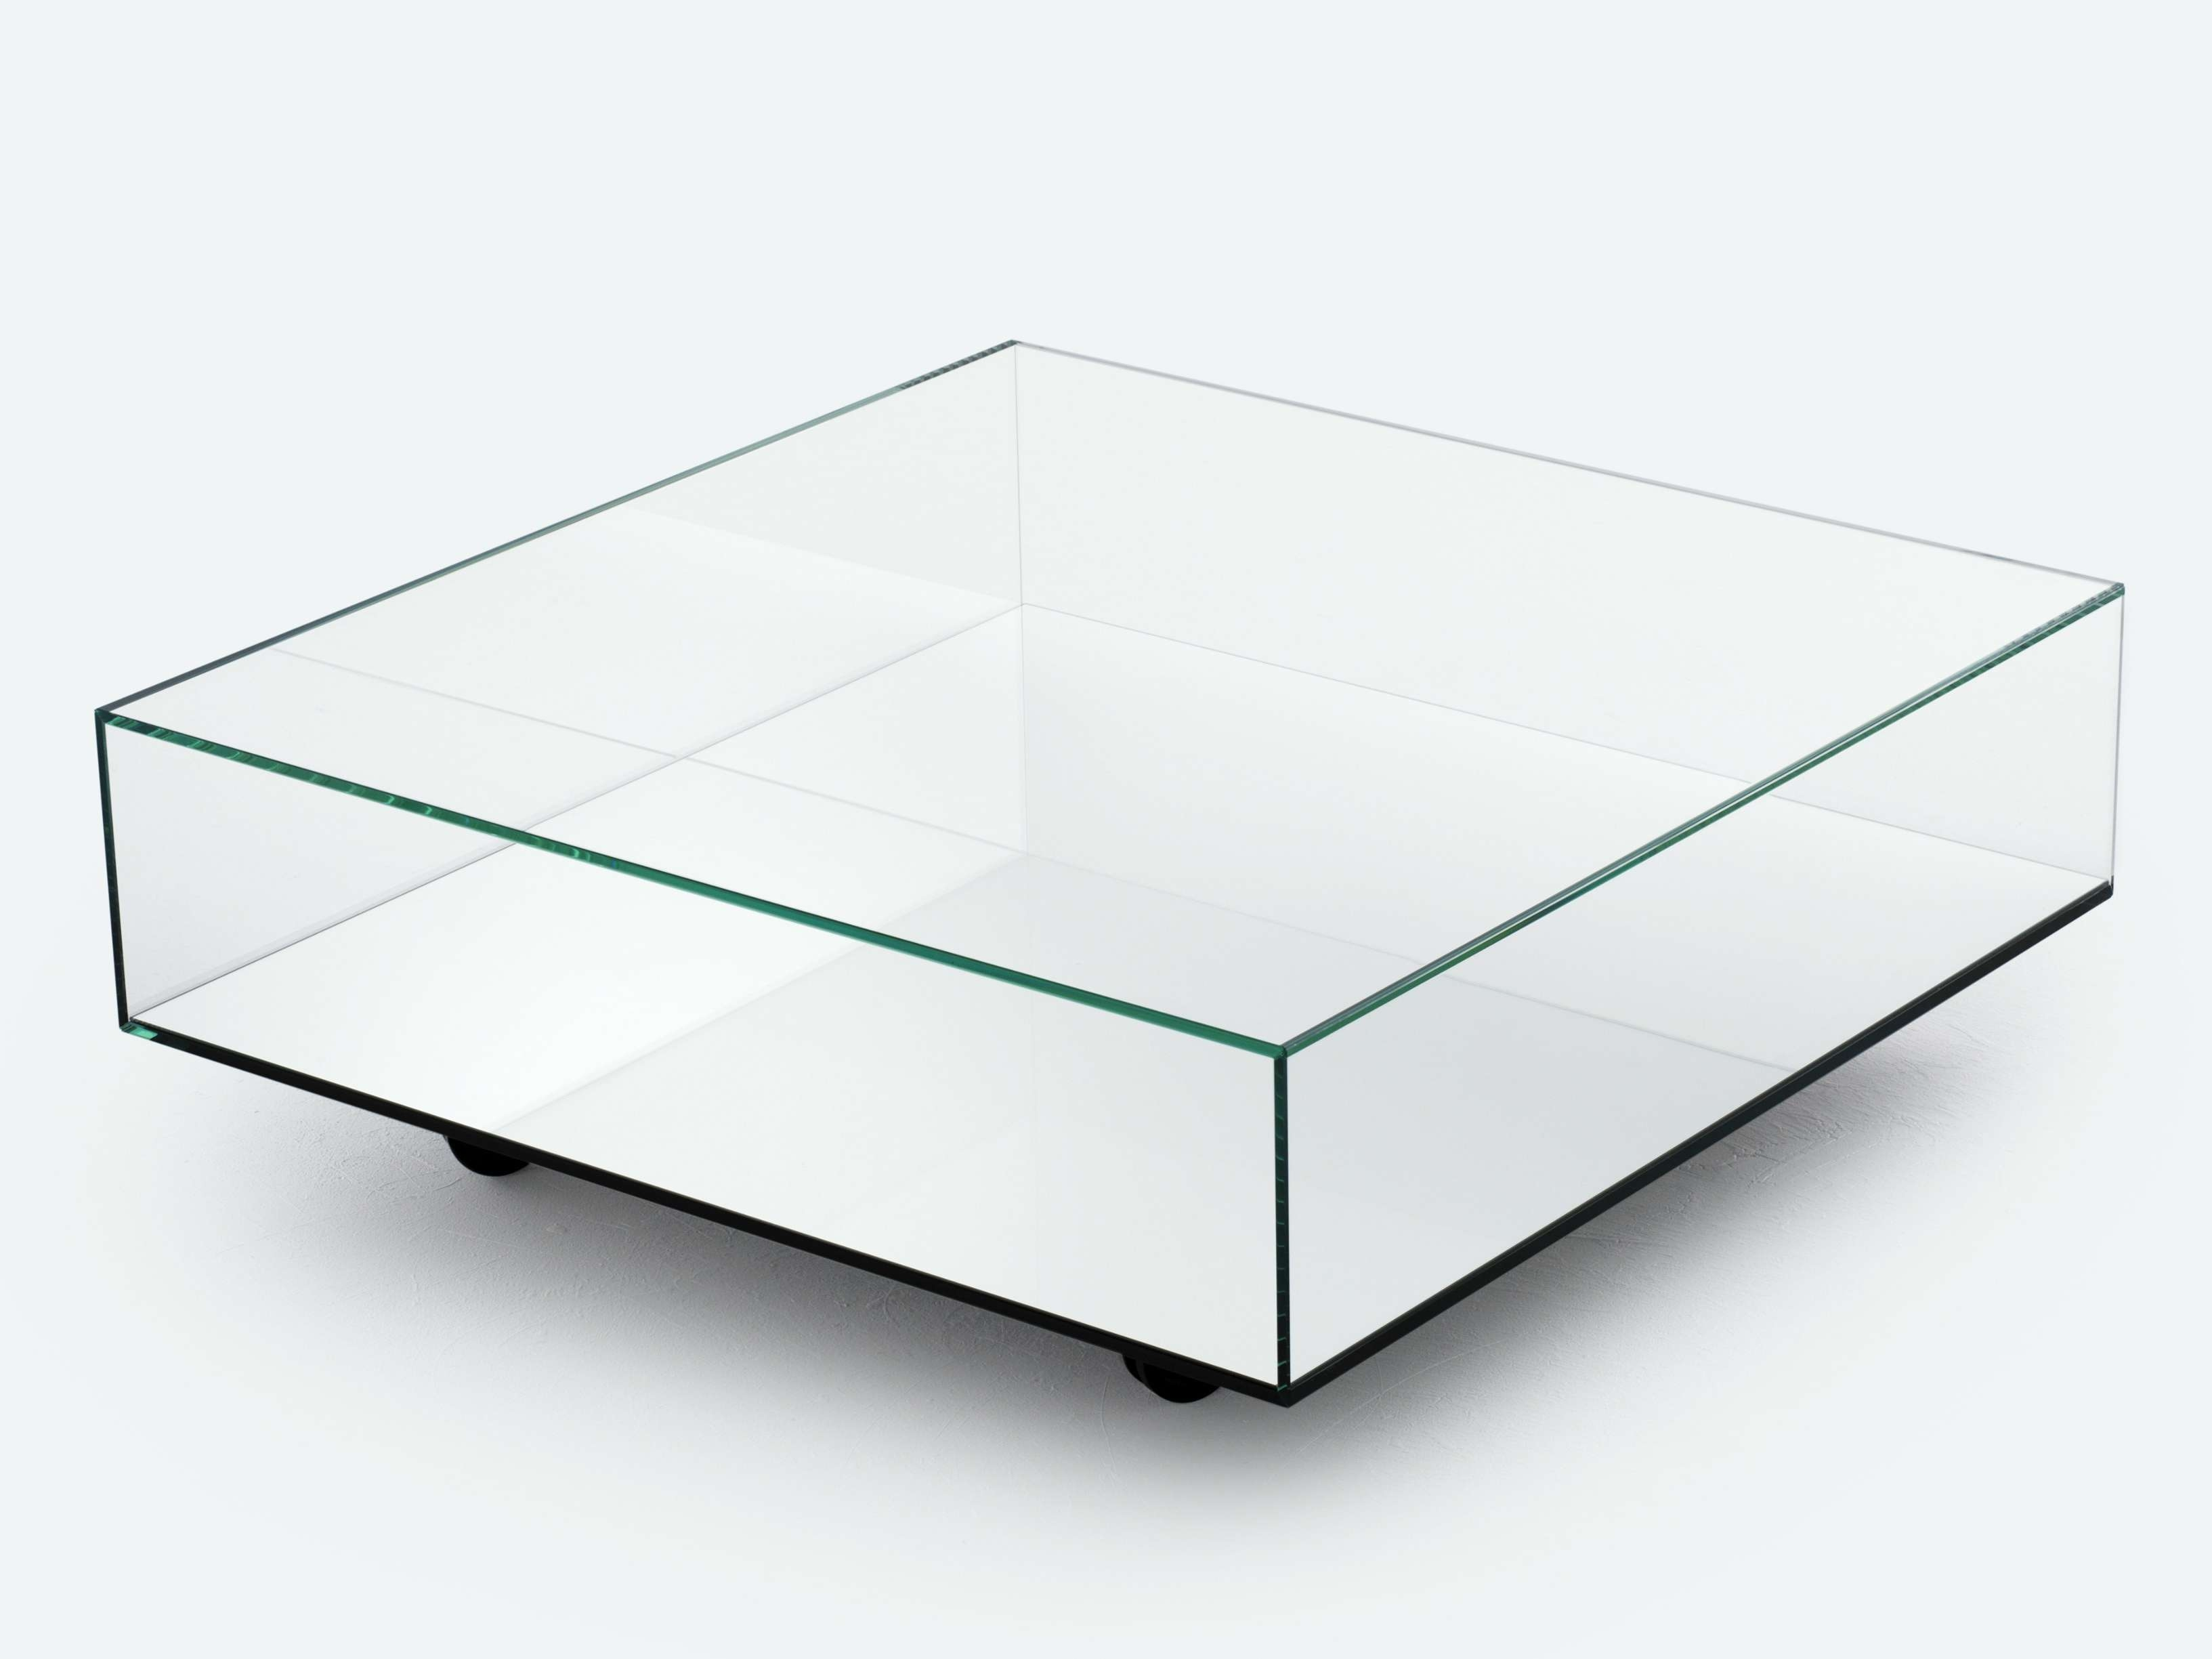 Well Known Low Coffee Table With Storage Throughout Square Low Profile Mirrored Glass Top Coffe Table With Storage And (View 20 of 20)